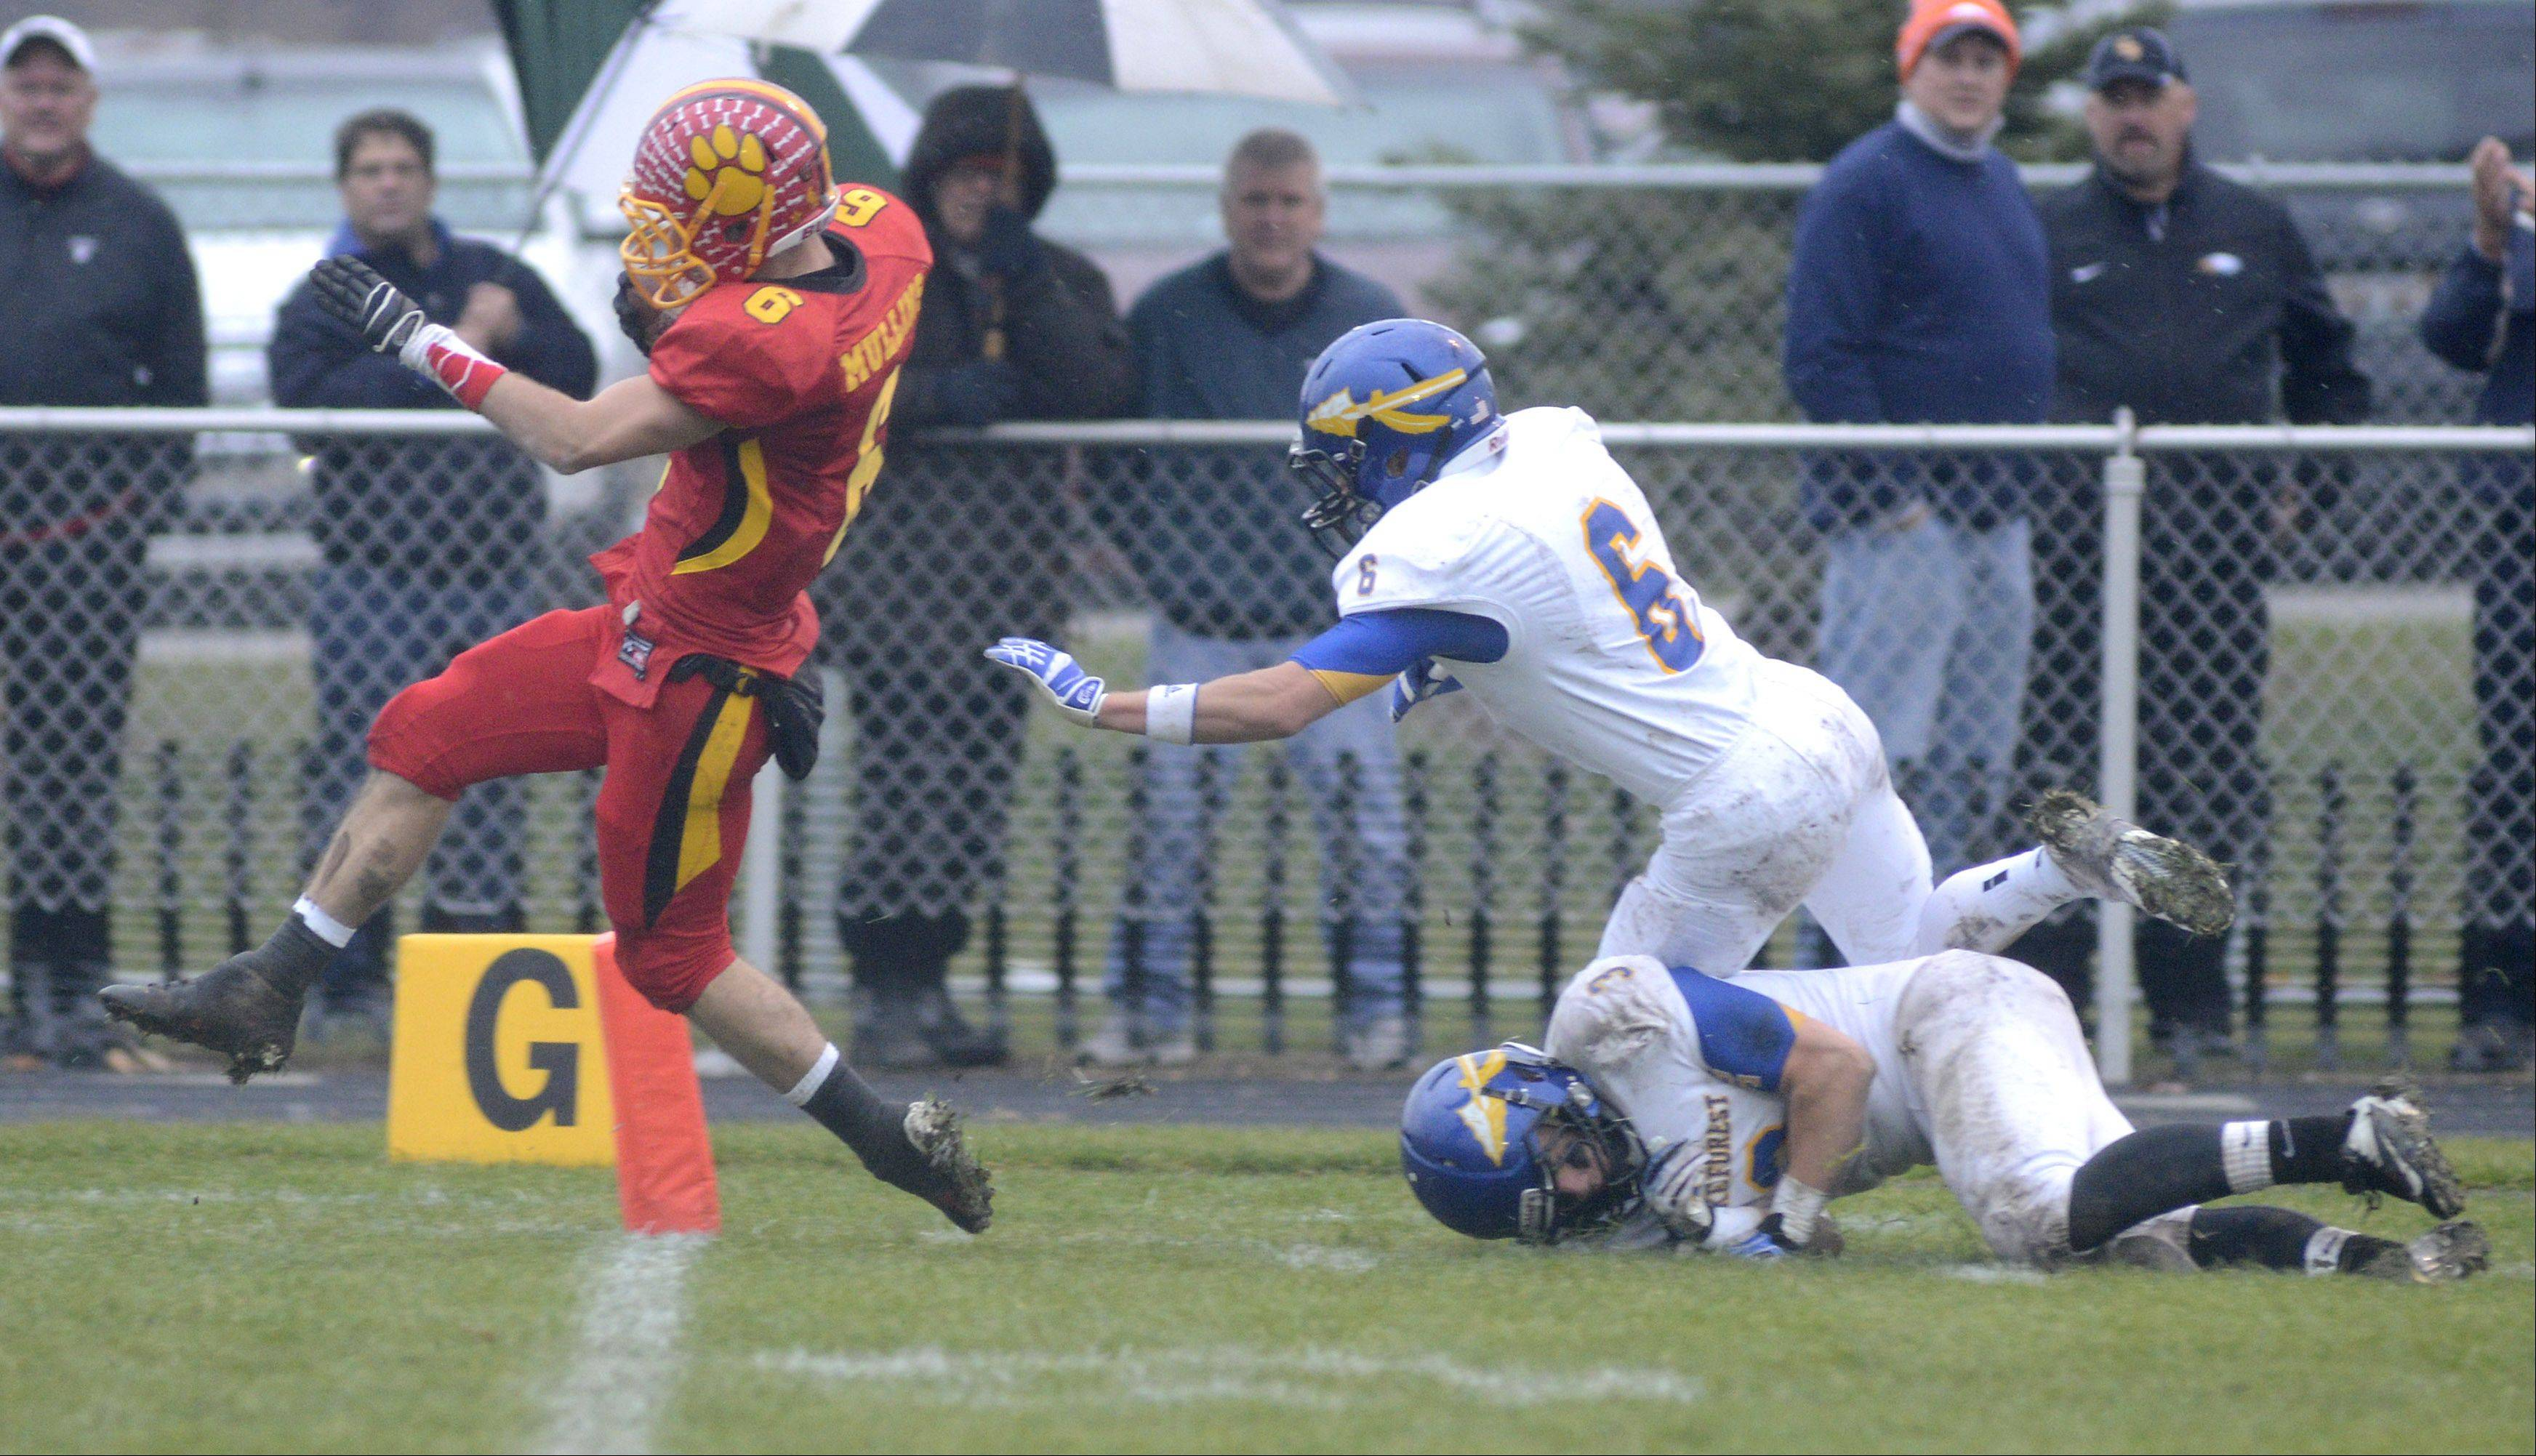 Batavia's Rourke Mullins skips over the goal line after shaking off Lake Forest's Andrew Nelson (6) and Jake Yale in the third quarter of the Class 6A quarterfinal on Saturday, November 16.